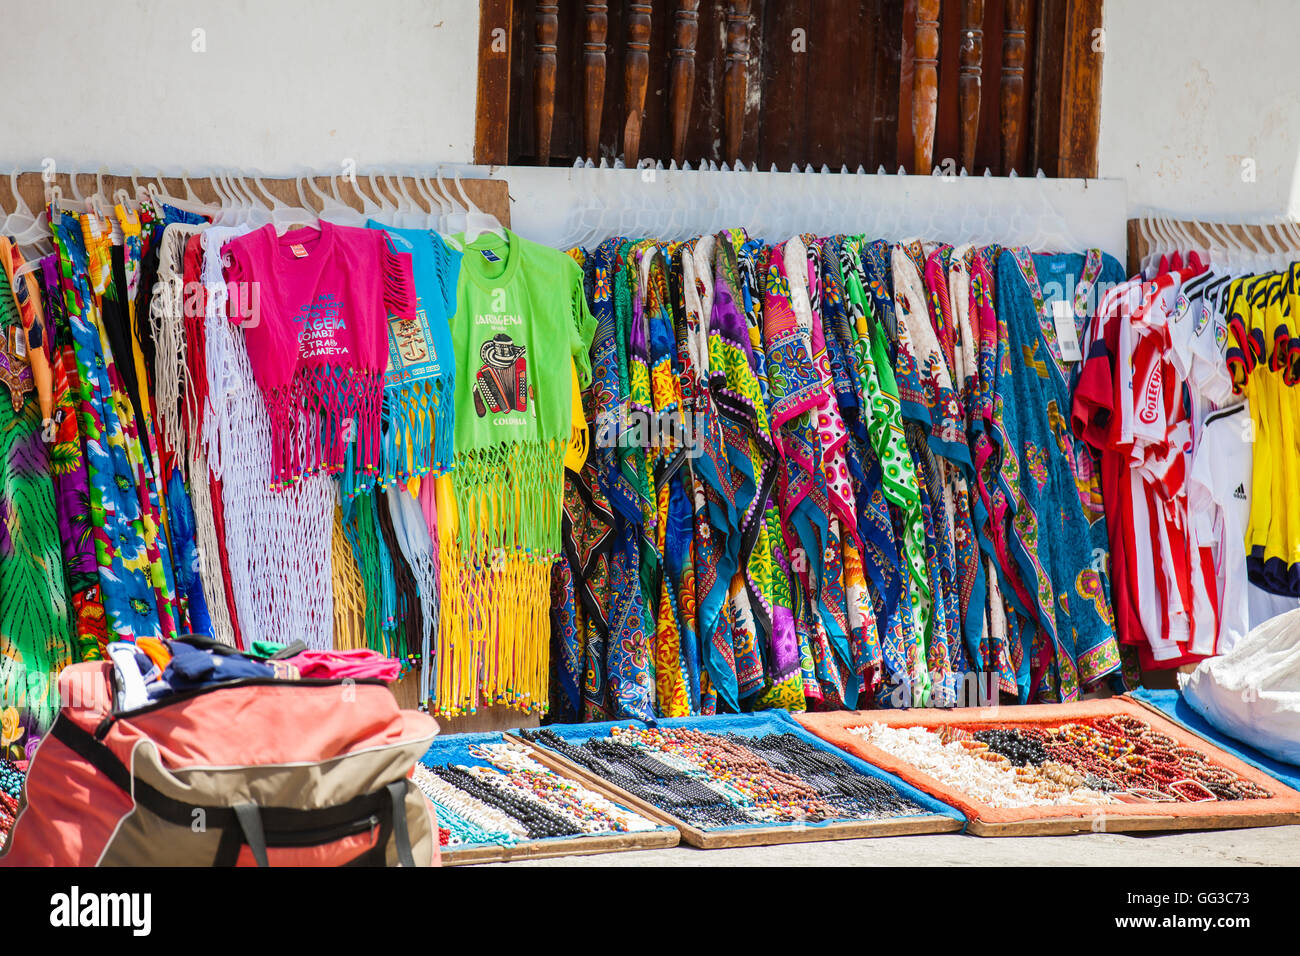 Clothes and accesories street selling in Cartagena de Indias - Stock Image